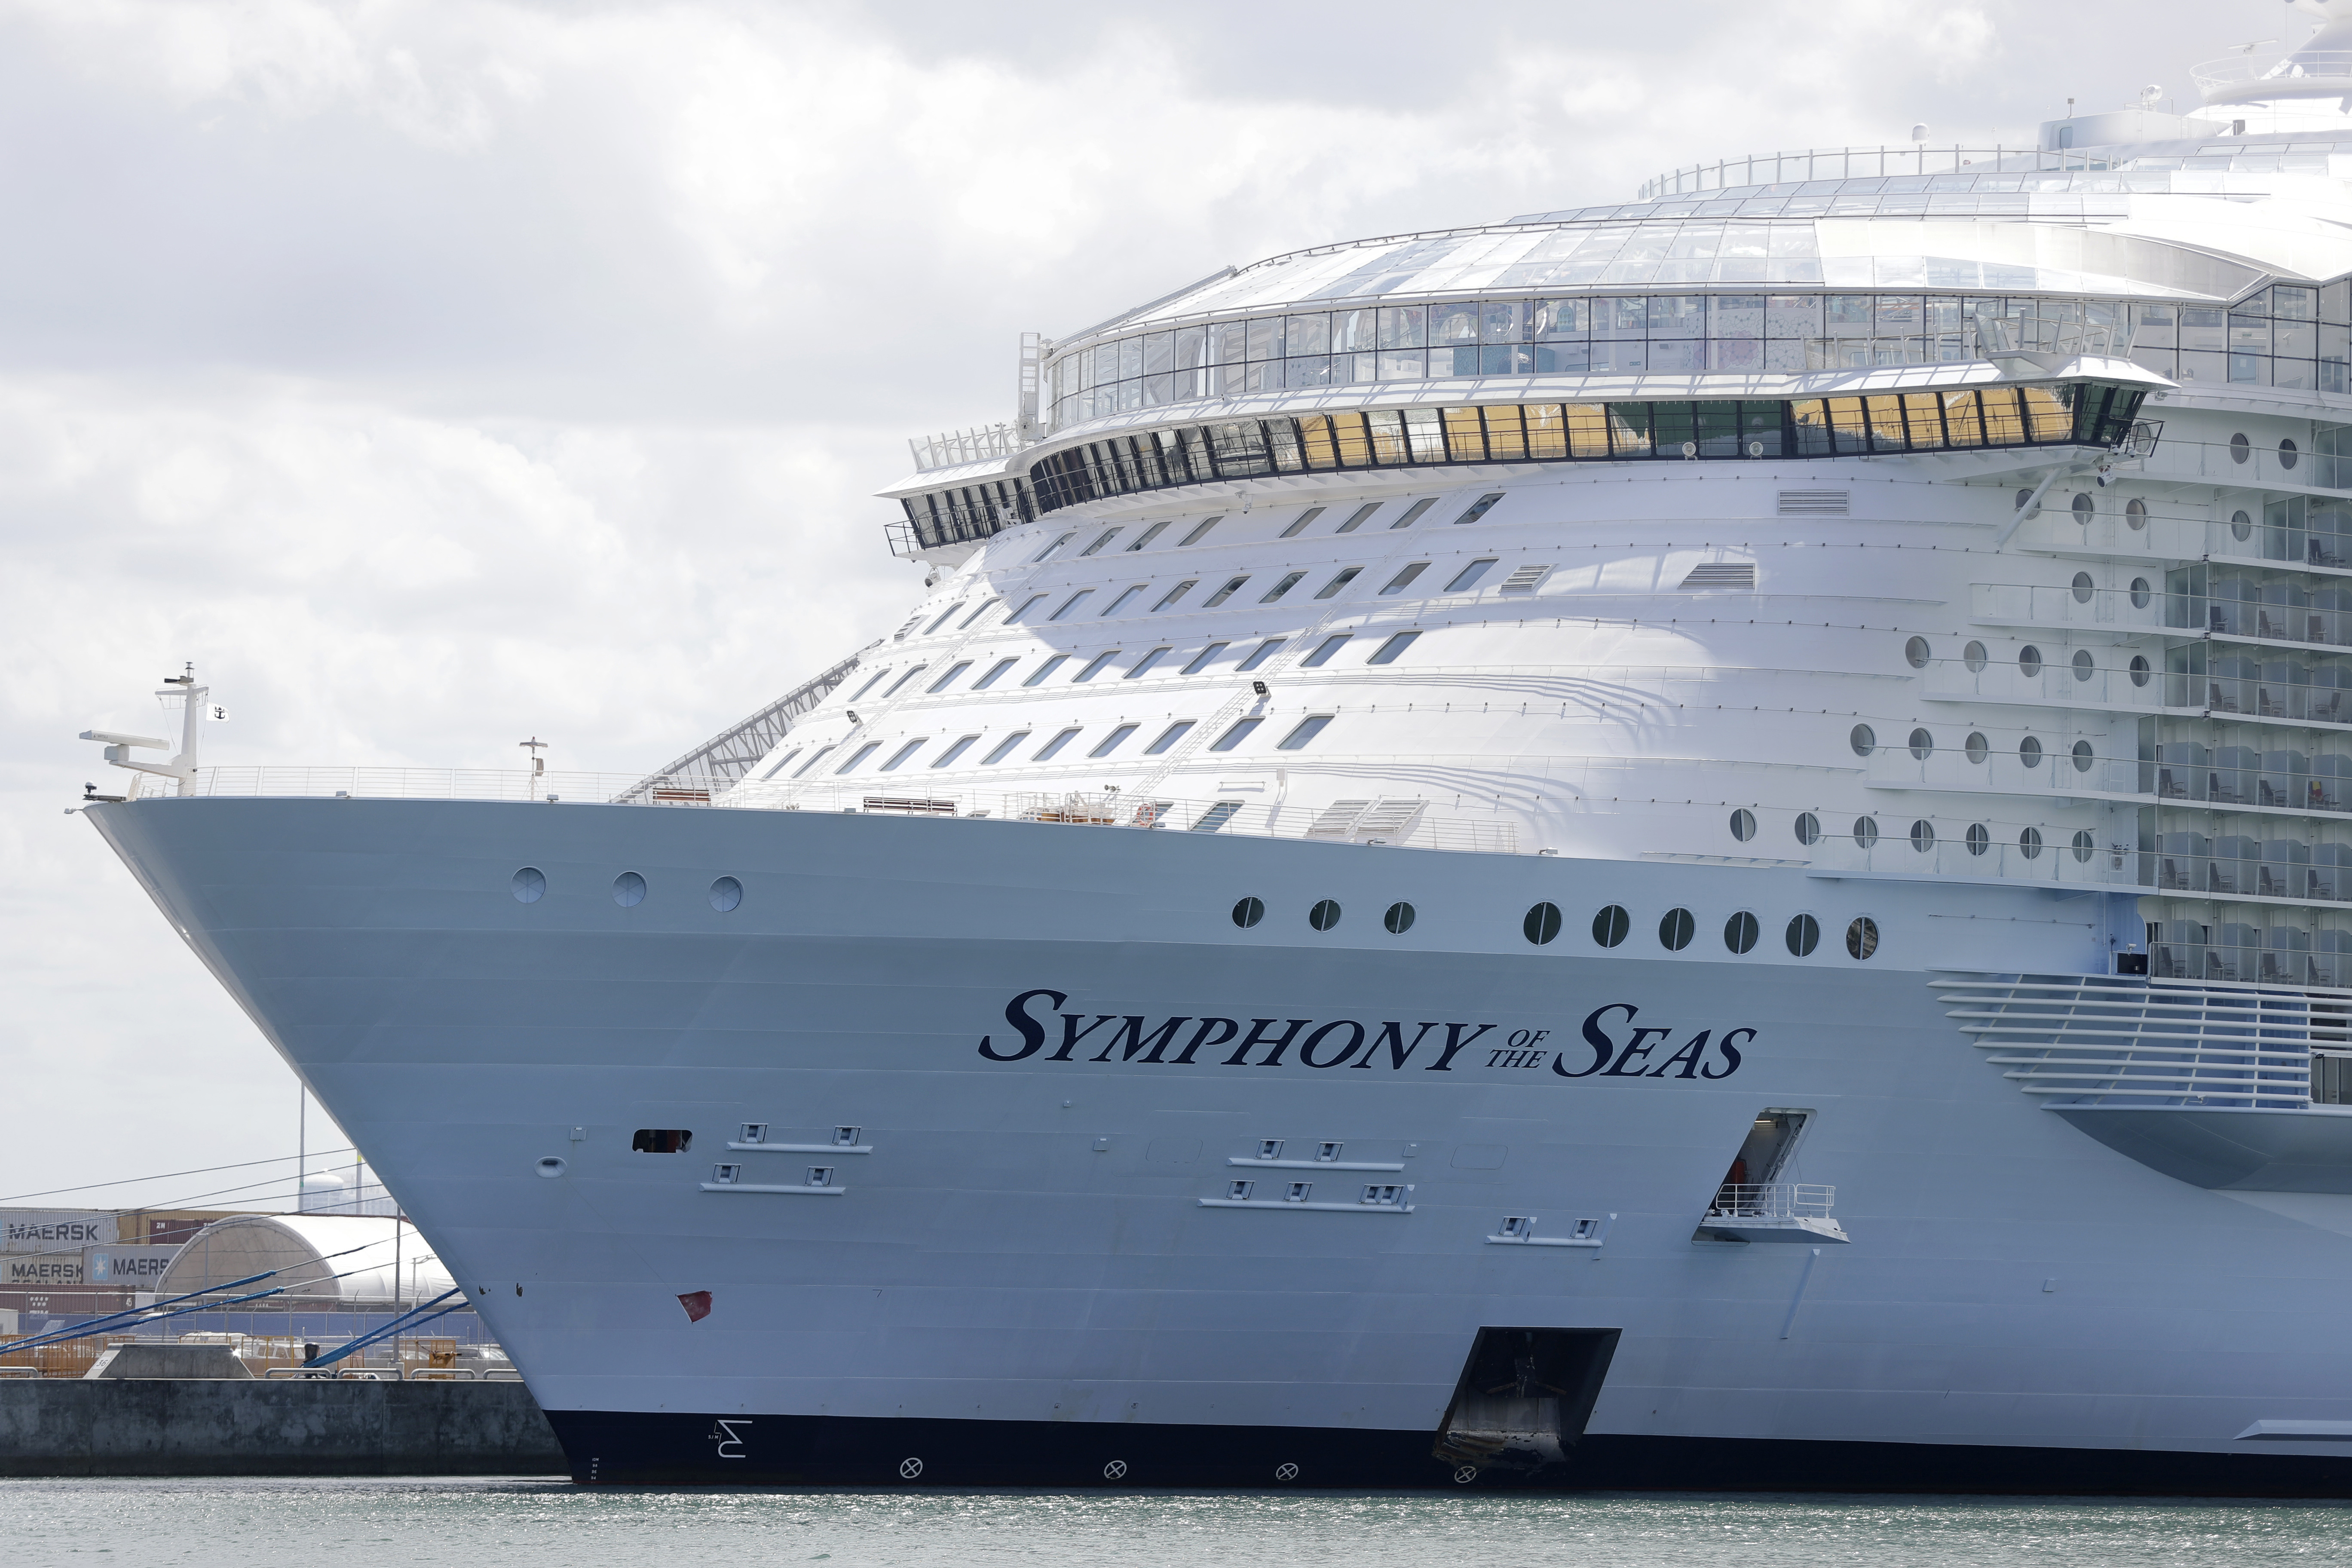 The Symphony of the Seas cruise ship is shown docked in a Wednesday, May 20, 2020, file photo, in Miami.